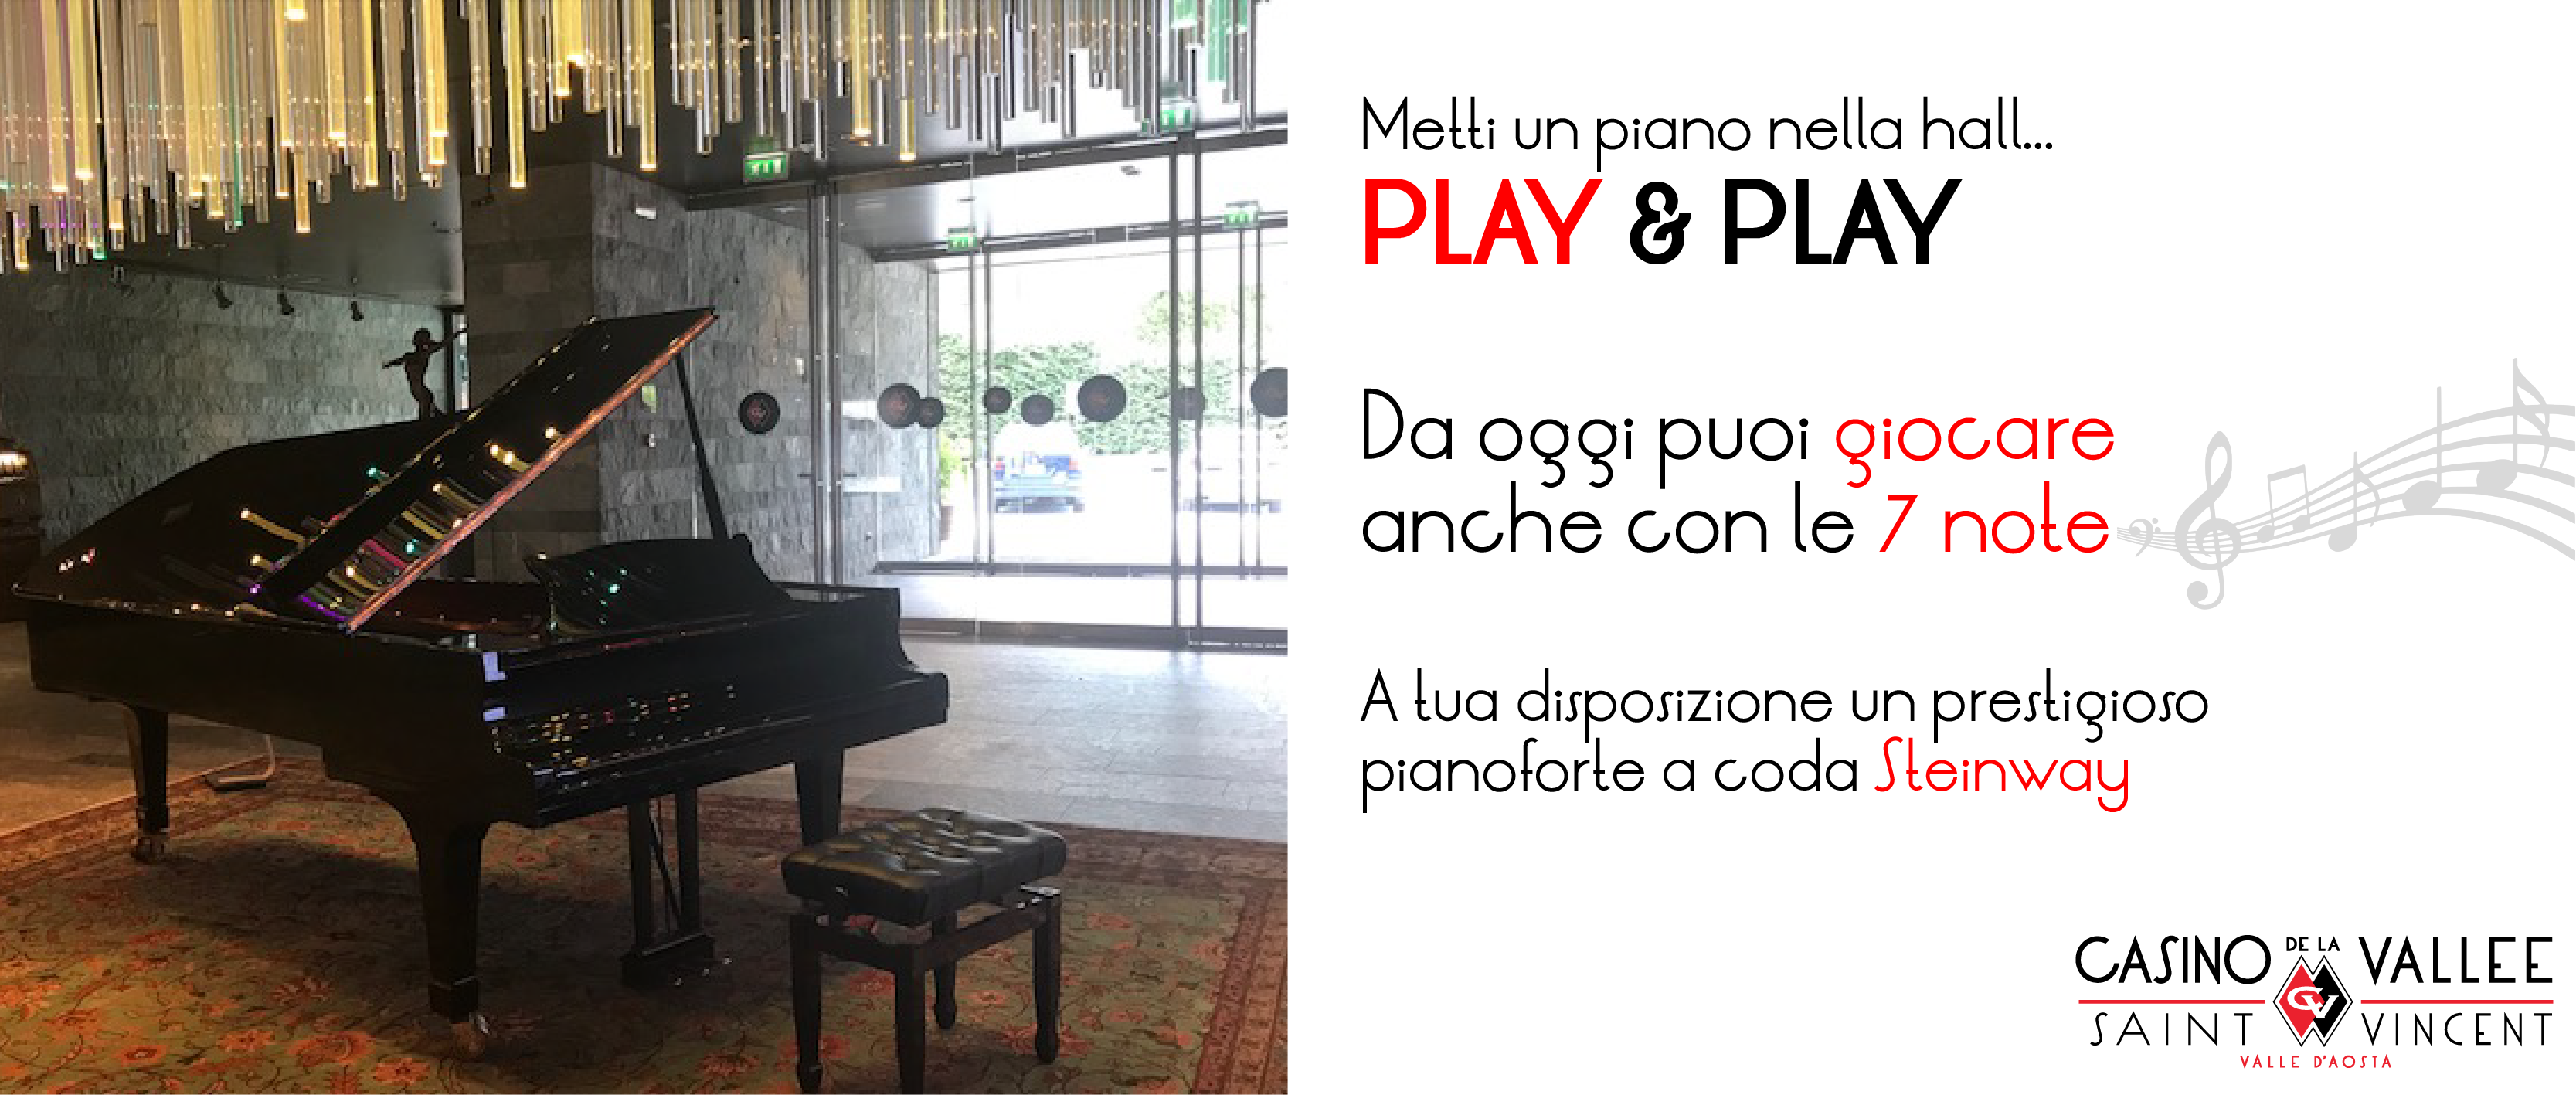 PLAY & PLAY